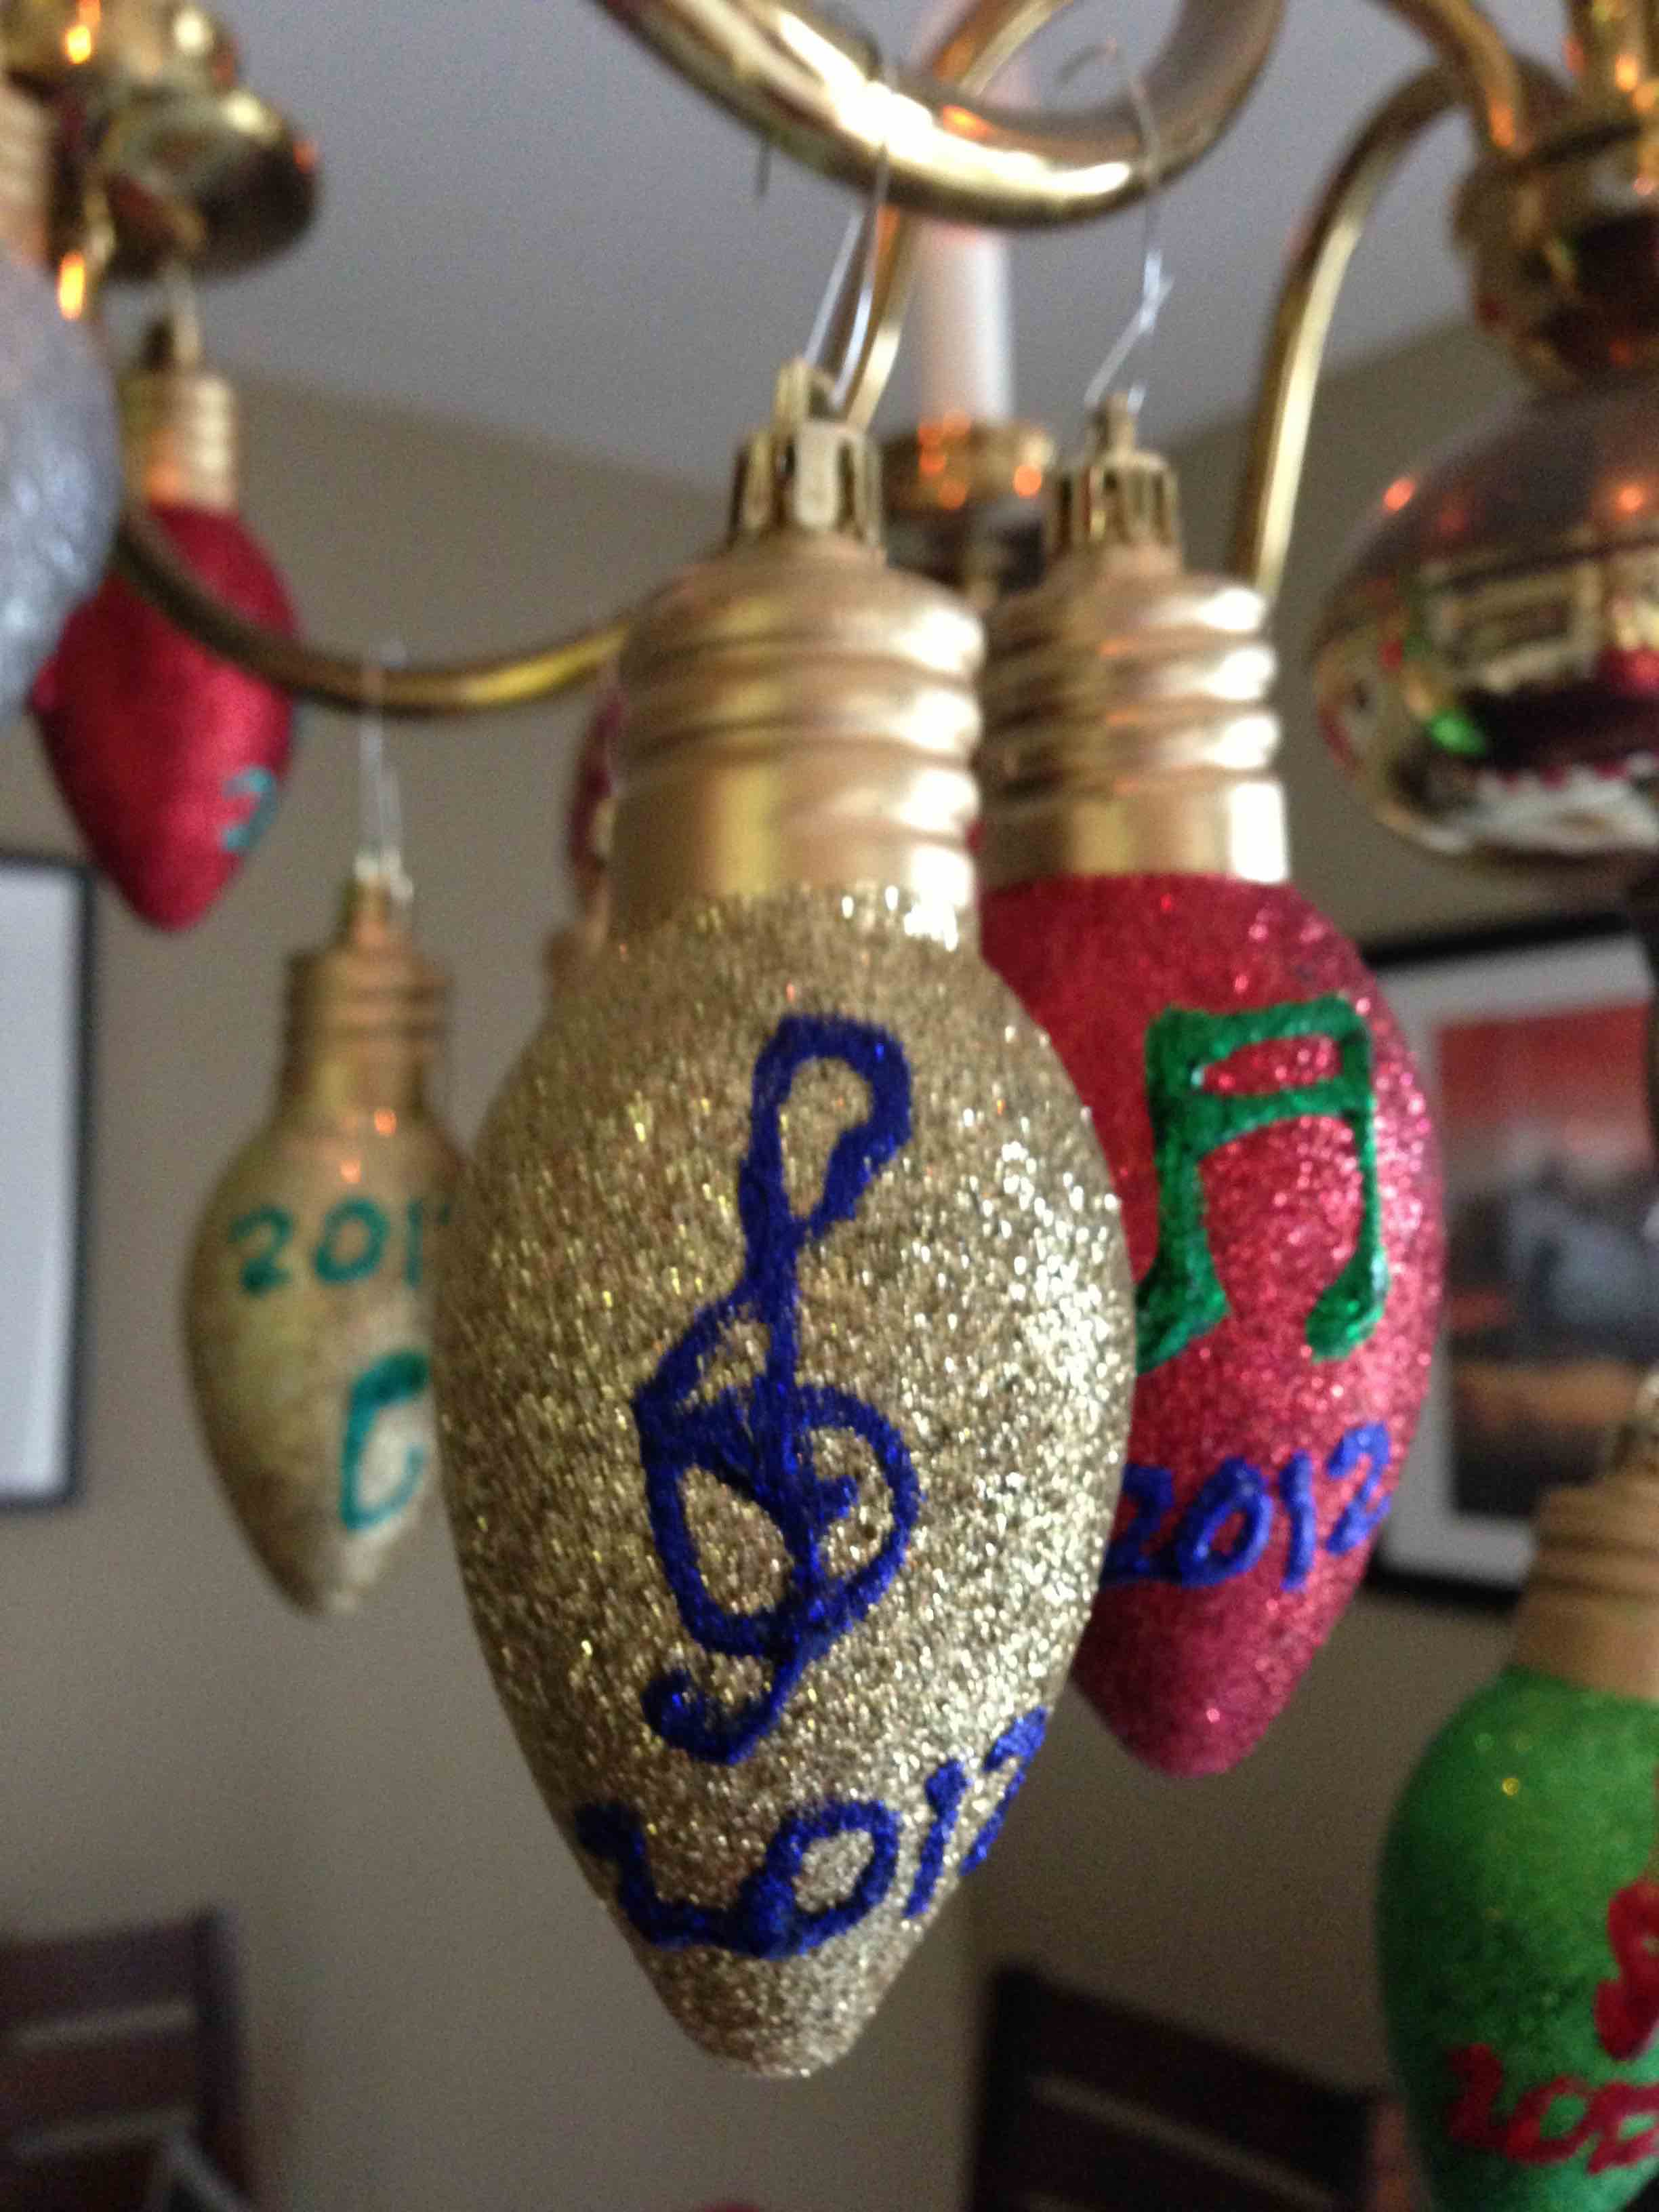 Decorate  - Buy decorations in bulk and use glitter glue to personalize them! Start this project a few days in advance to allow the glue to dry!